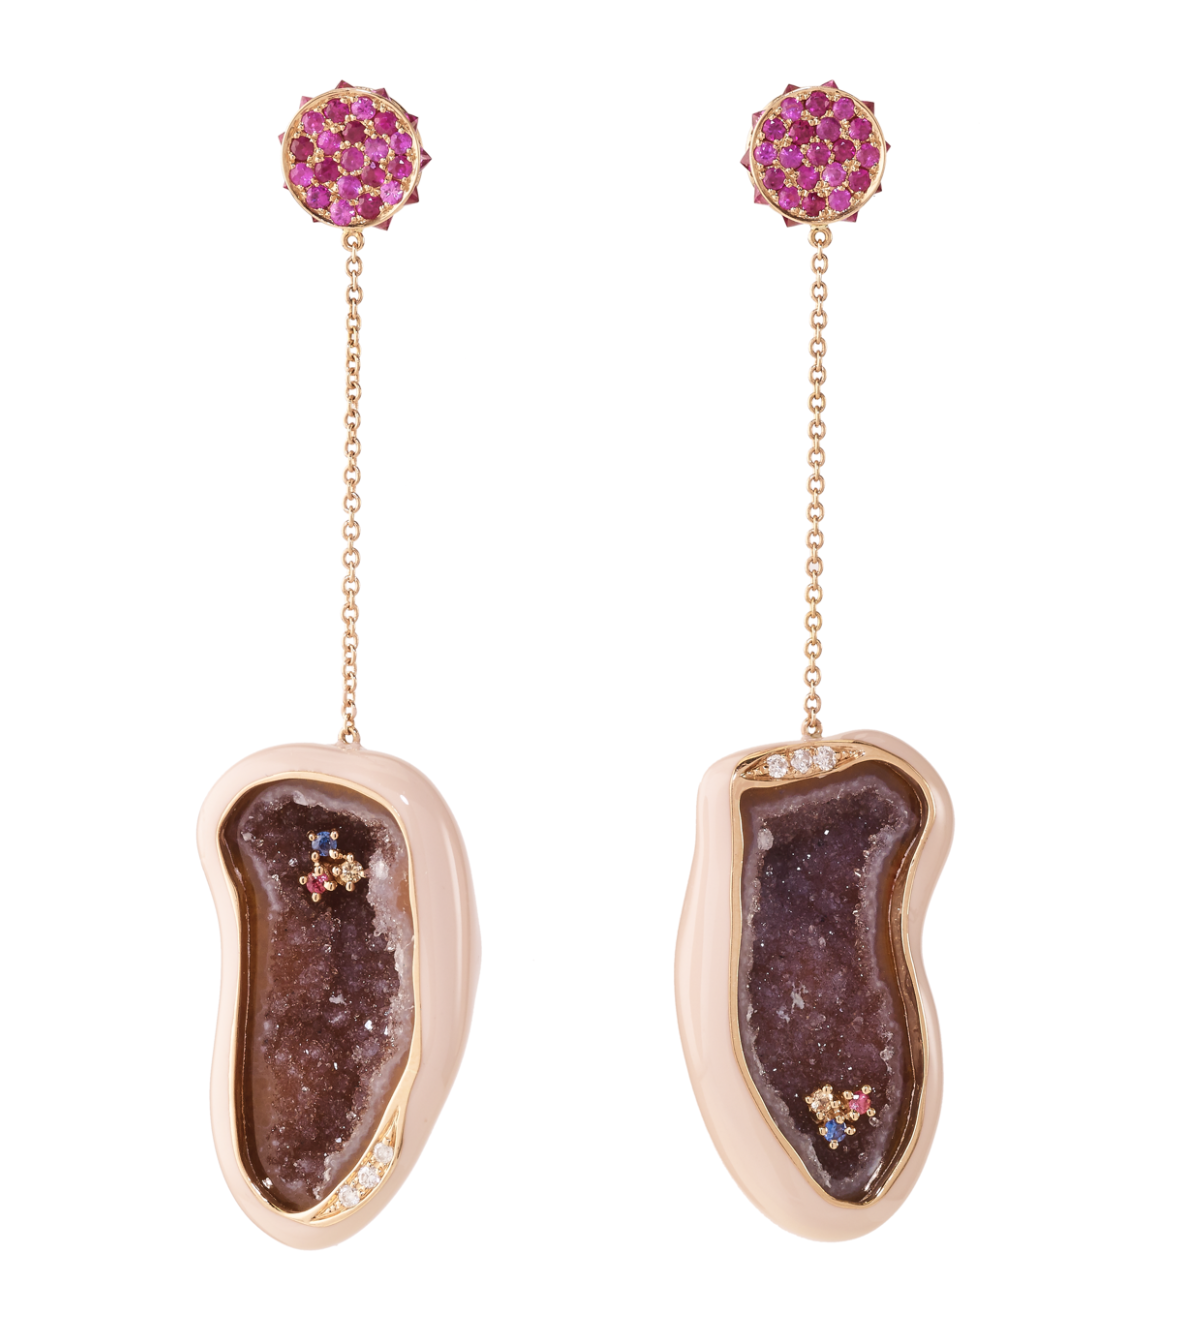 Flare Shell Enamel Geode Earrings by Marmari on curated-crowd.com